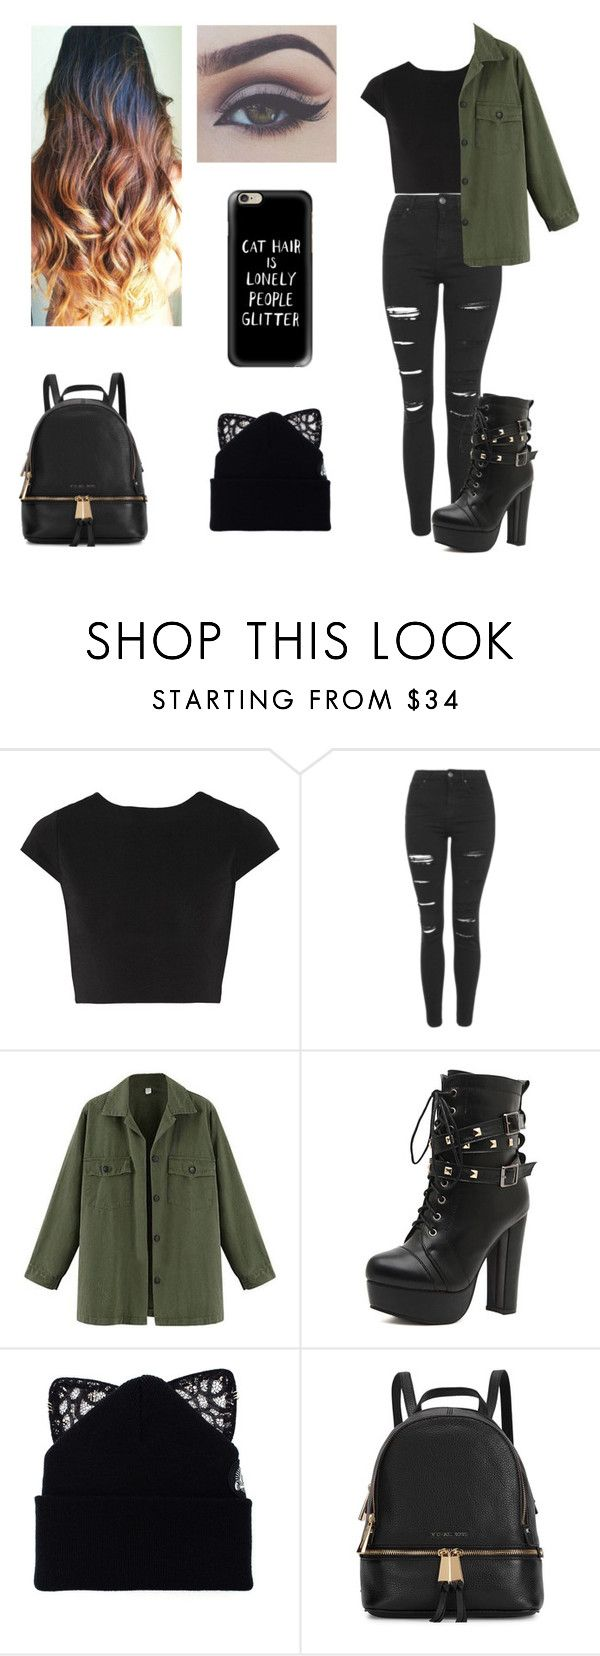 """Untitled #6"" by jaderaphael ❤ liked on Polyvore featuring beauty, Alice + Olivia, Topshop, WithChic, Silver Spoon Attire, Michael Kors and Casetify"